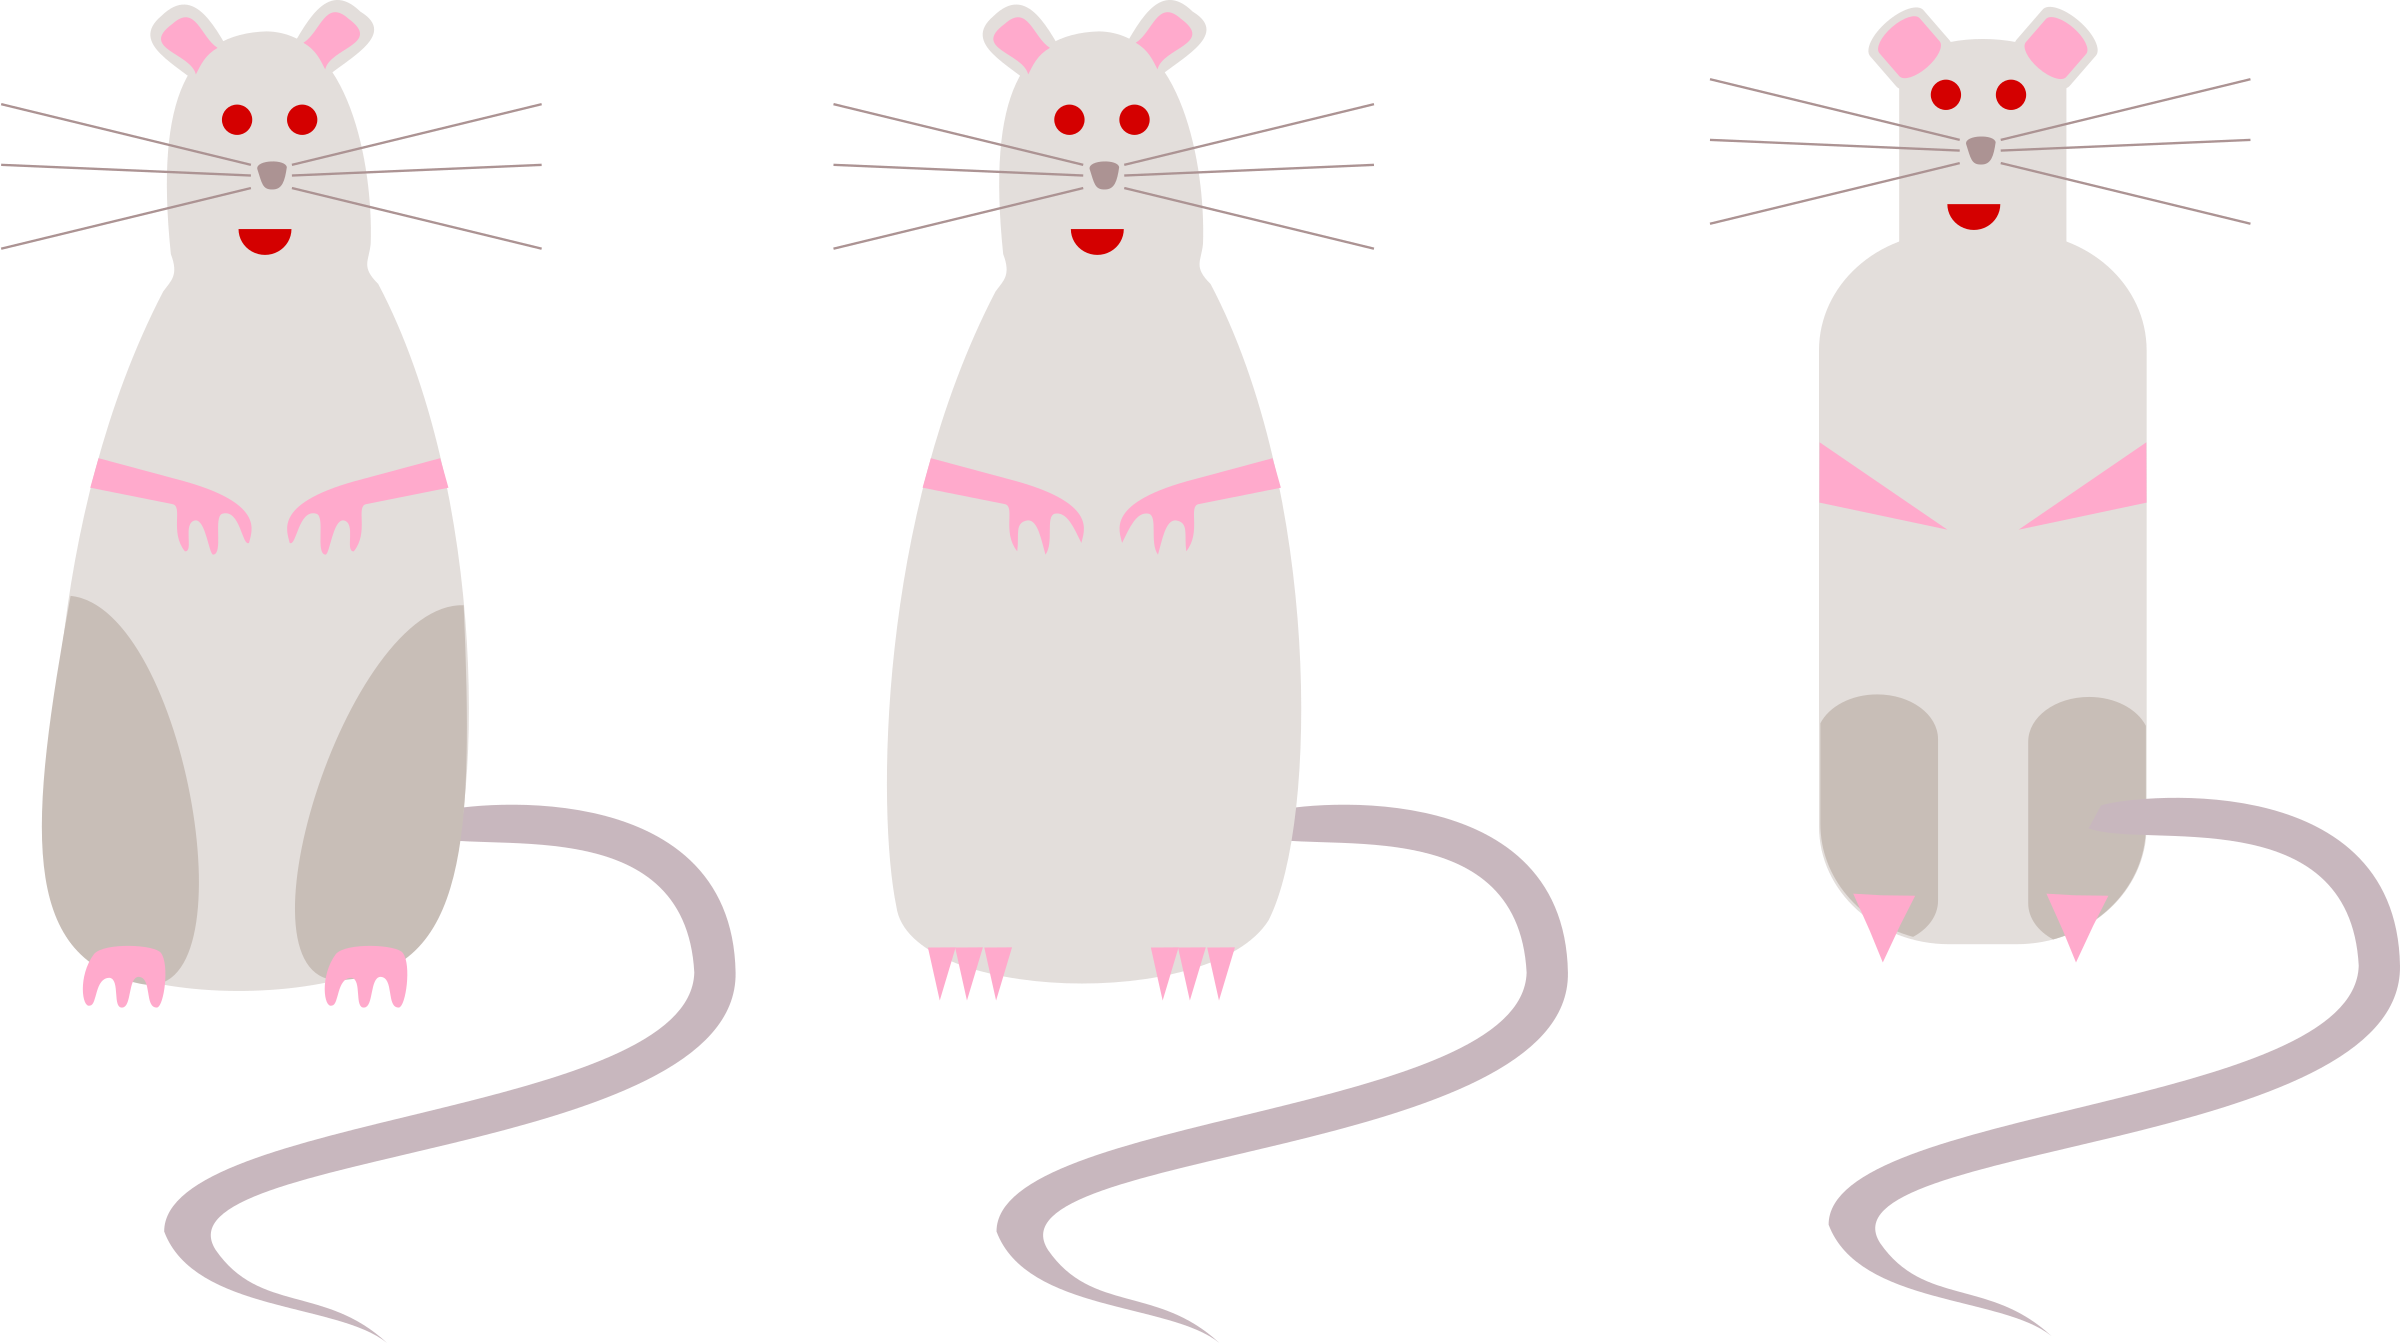 rat by bratac